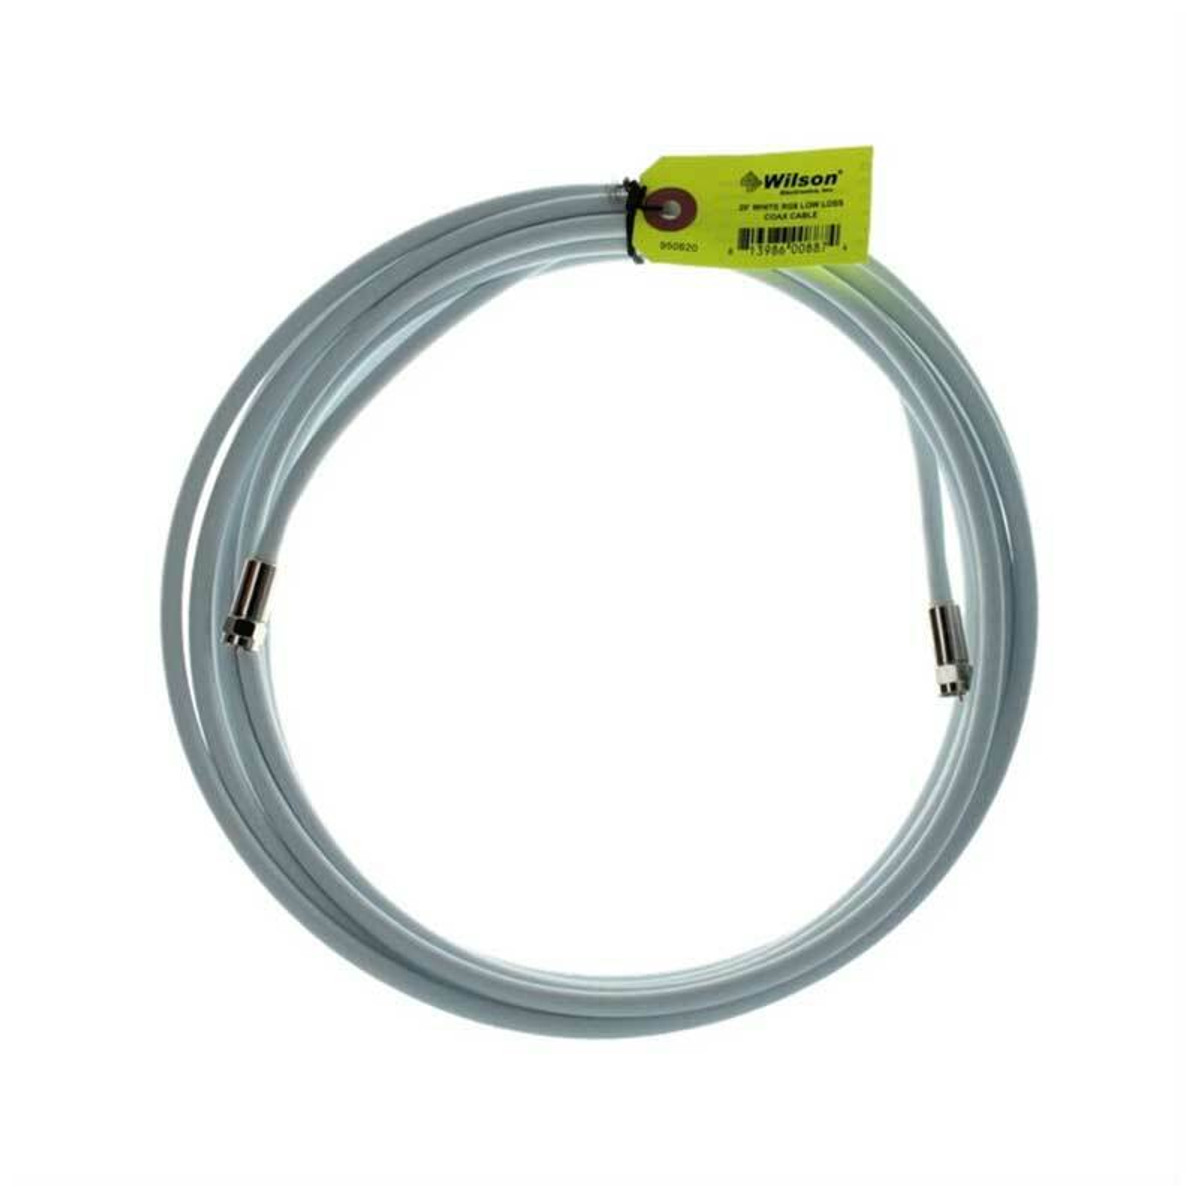 Wilson Electronics weBoost Wilson 950620 RG6 F-Male to F-Male or 20 ft White Cable